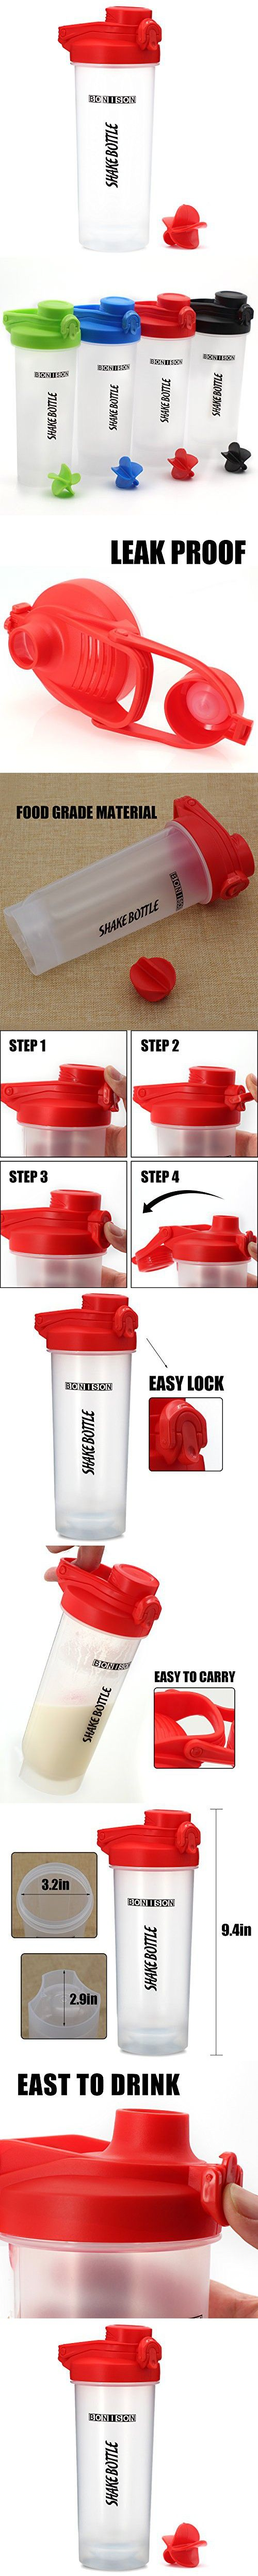 Hoople 24 OZ Mixers Protein Mixing Bottle Smoothies Shaker Mix Powders Shaker Bottle BPA and Phthalate-free Plastic Leak Proof Bottle Loop Top Twist Cap Shaker (24oz-red)